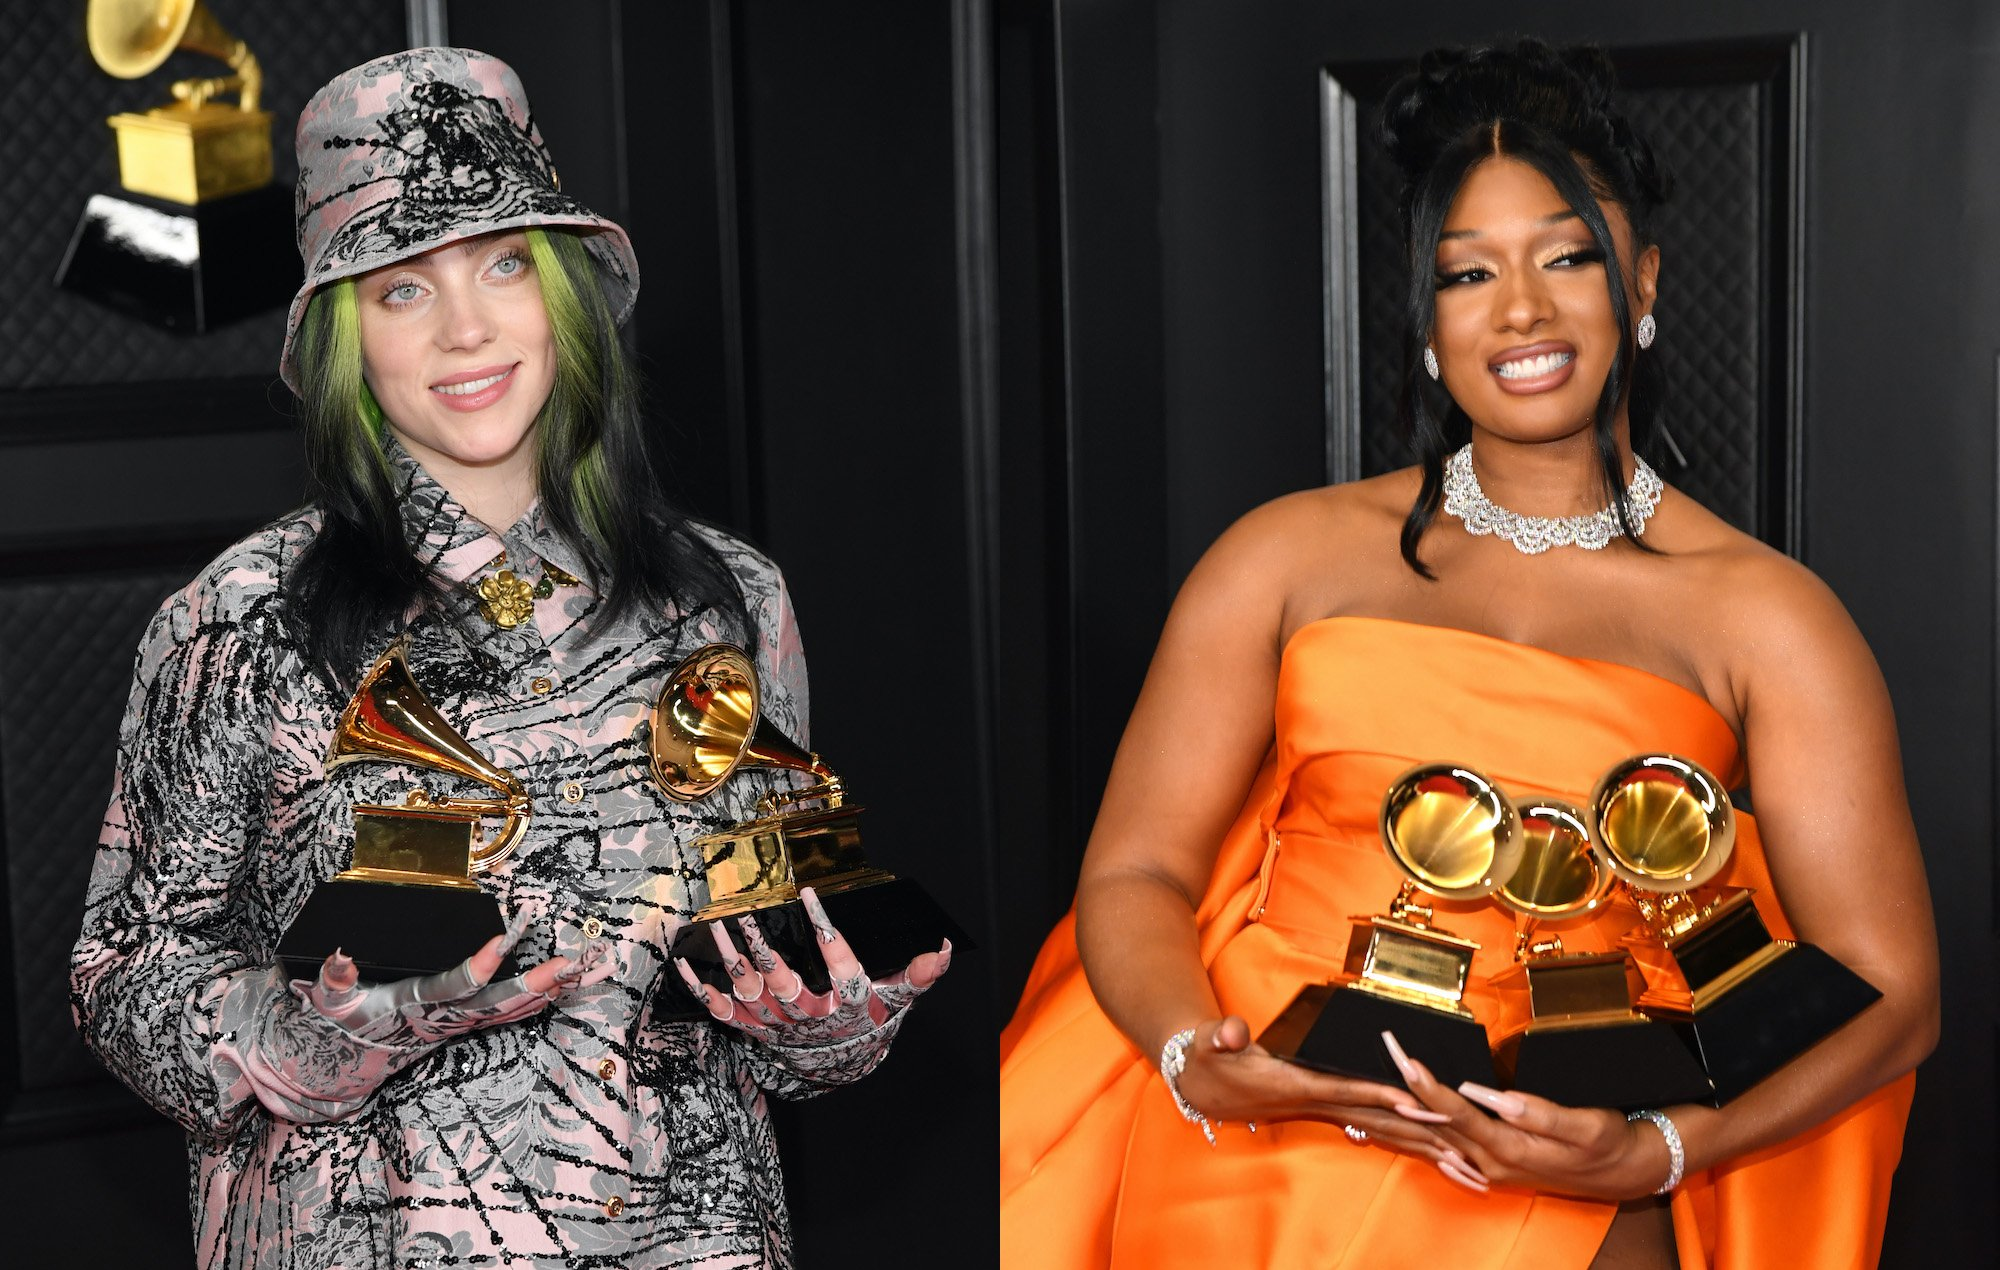 Billie Eilish Gushes Over Megan Thee Stallion During GRAMMY Acceptance Speech – Says She Deserved To Win Record Of The Year Instead